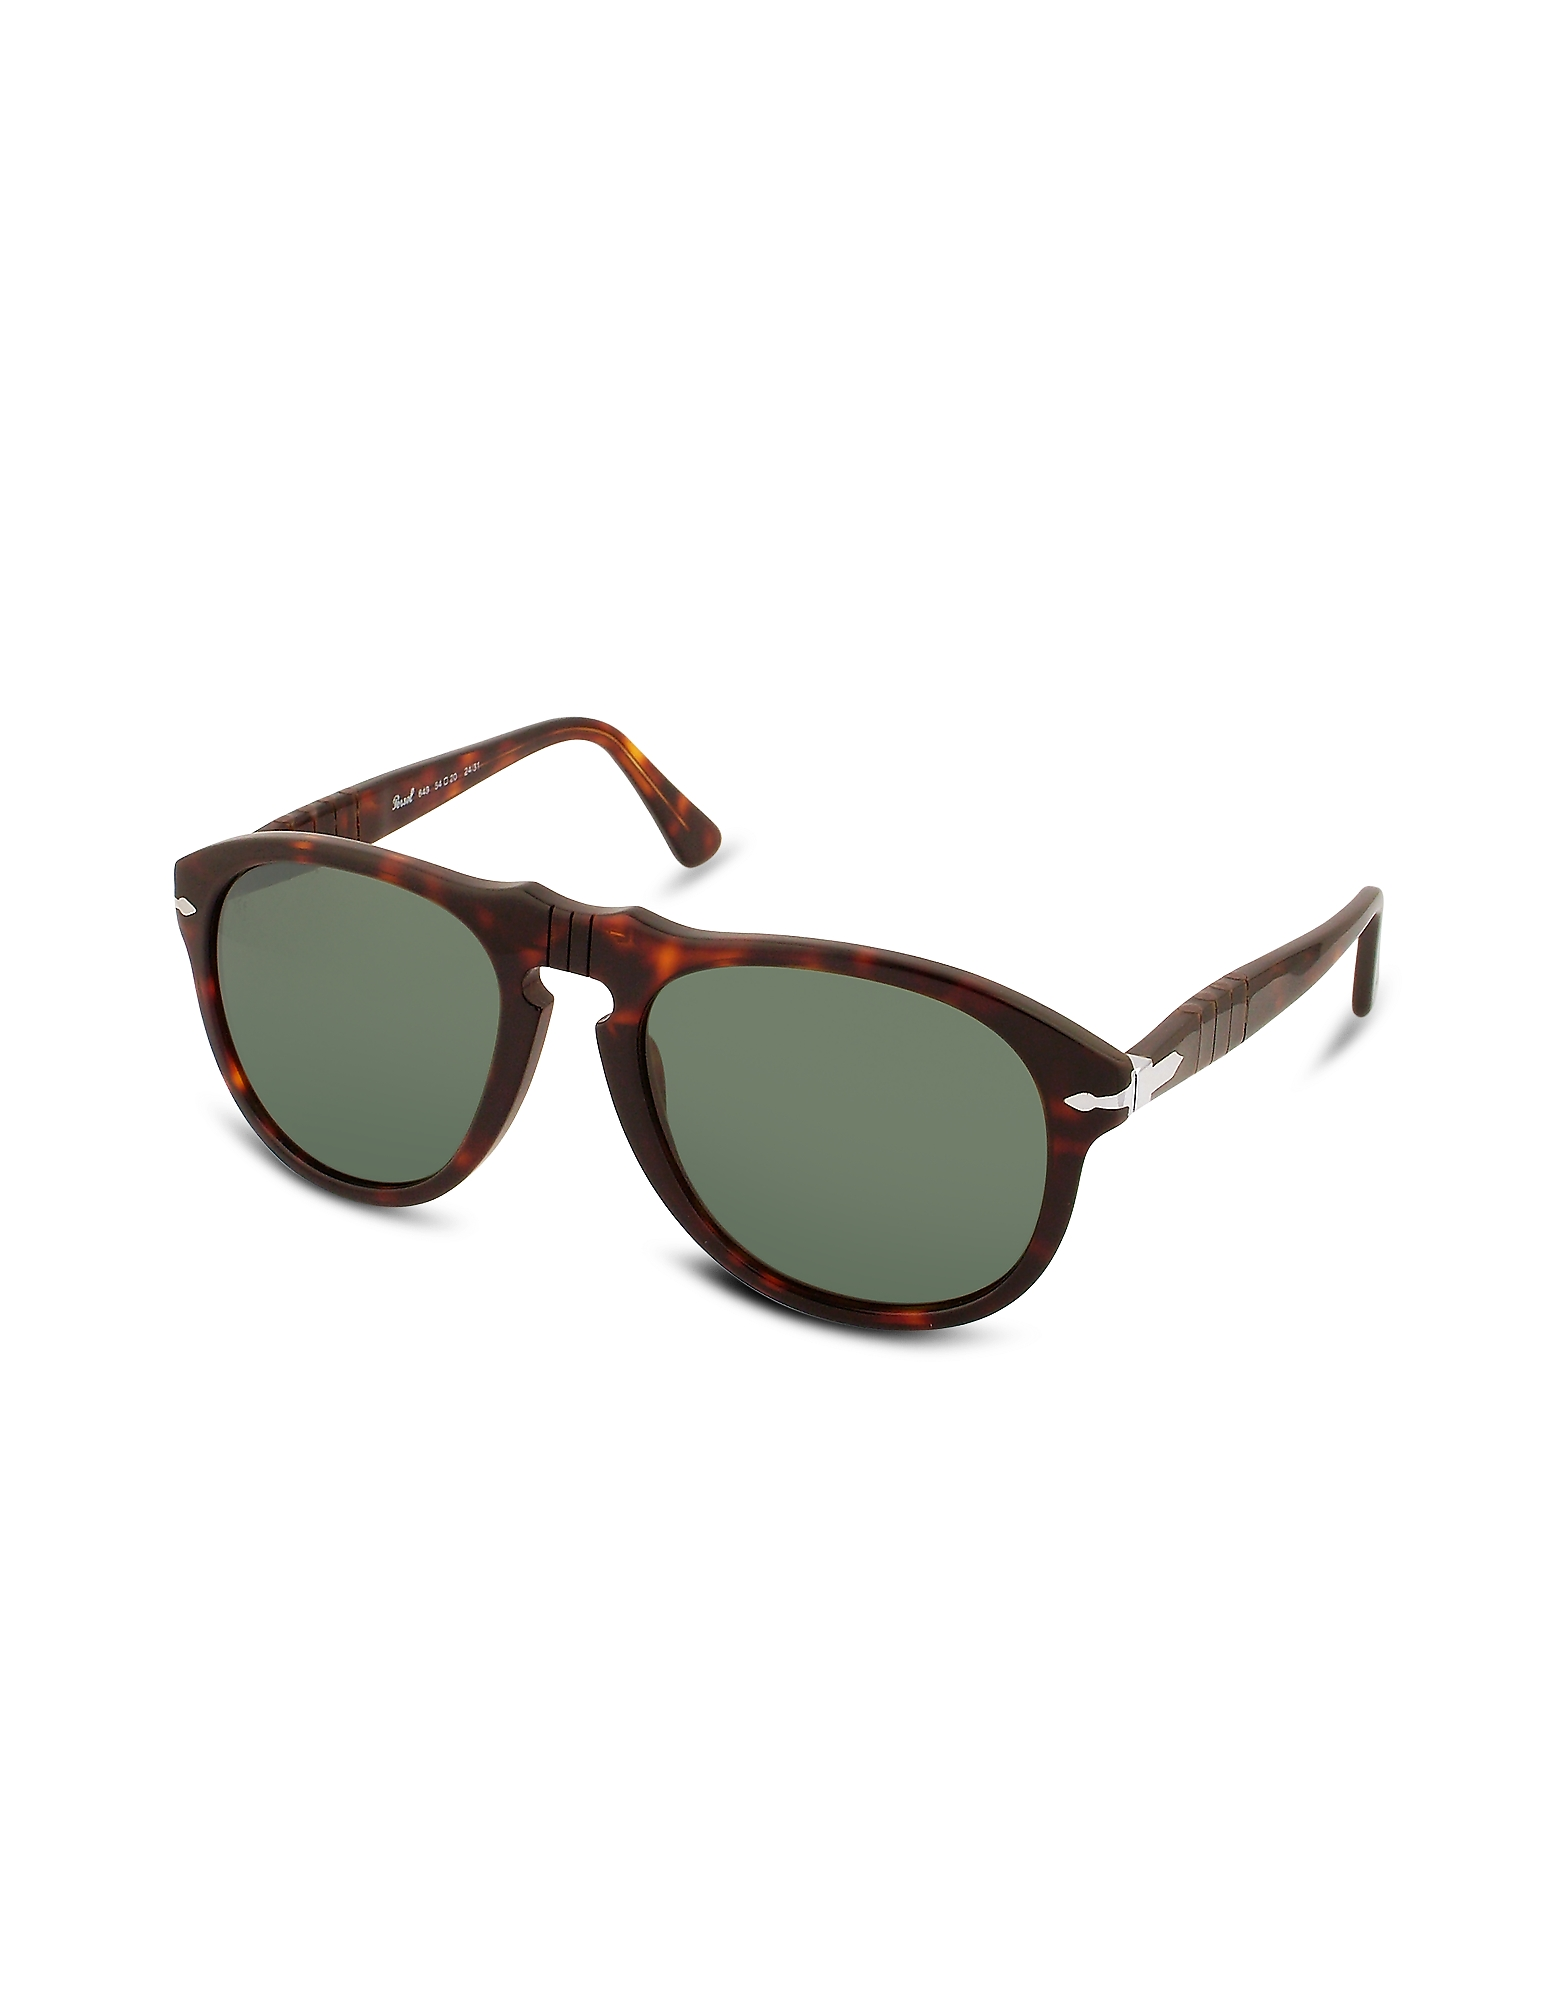 Persol Designer Sunglasses, Arrow Signature Aviator Plastic Sunglasses